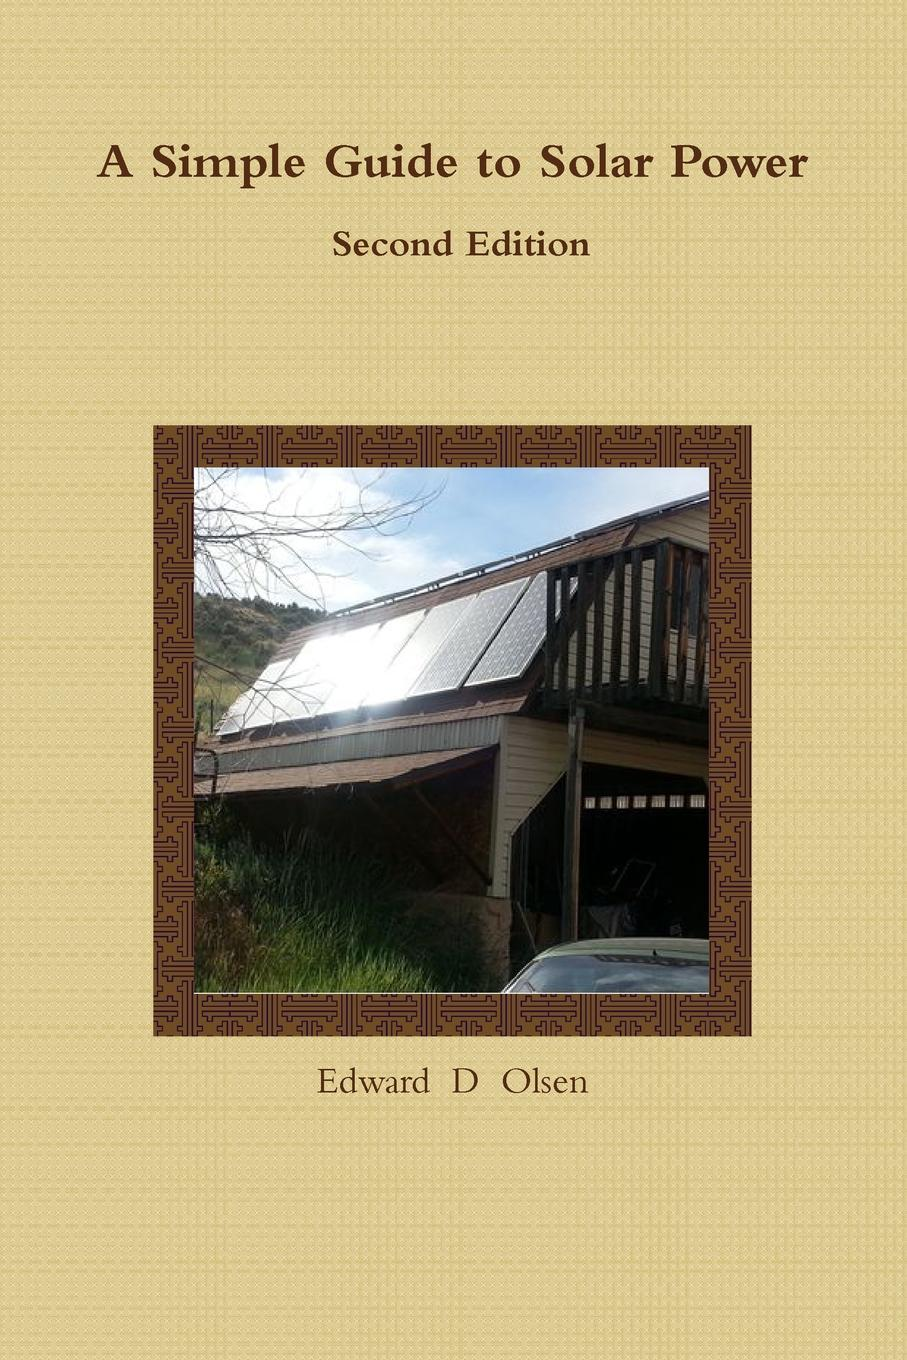 Edward Olsen A Simple Guide to Solar Power - Second Edition аккумулятор для телефона craftmann hb476387rbc для huawei honor 3x ascend g750 glory 4 honor 3x pro b199